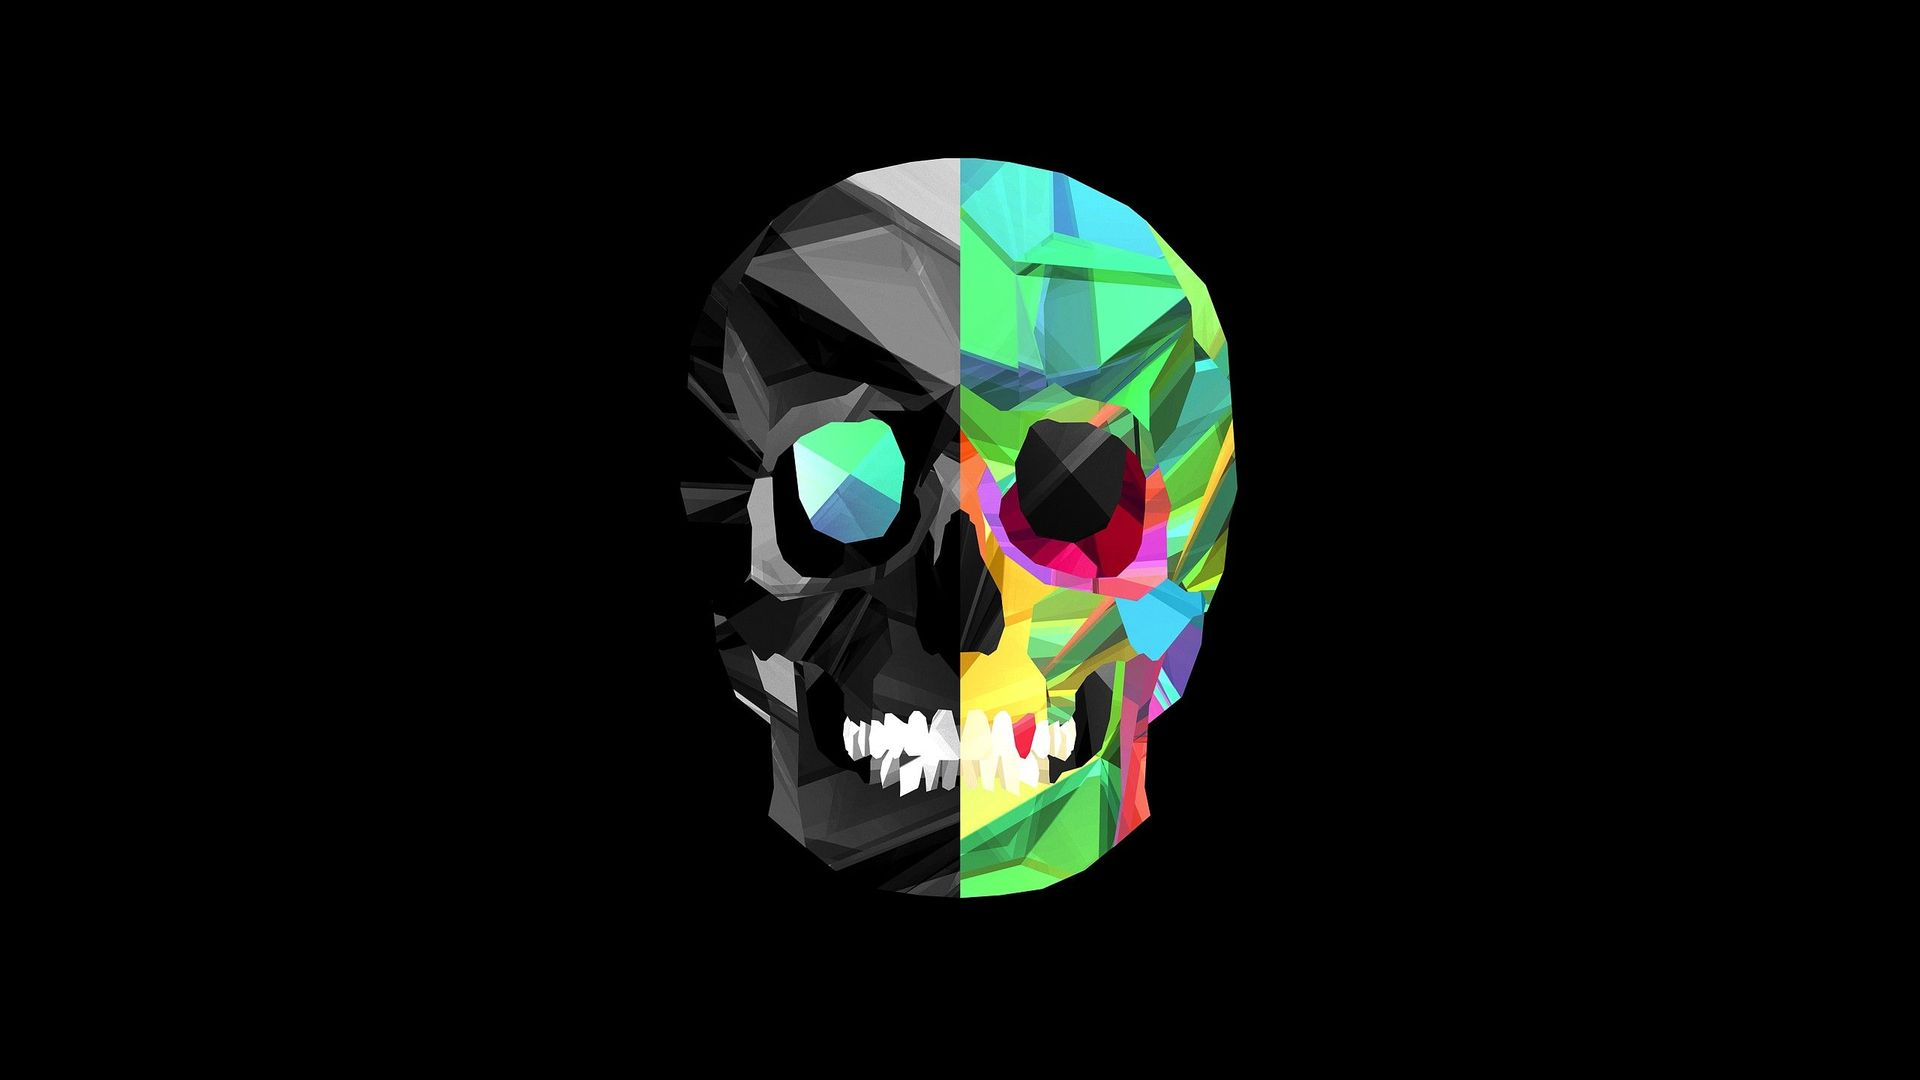 Cool Images of Colorful Skull 216.7 Kb